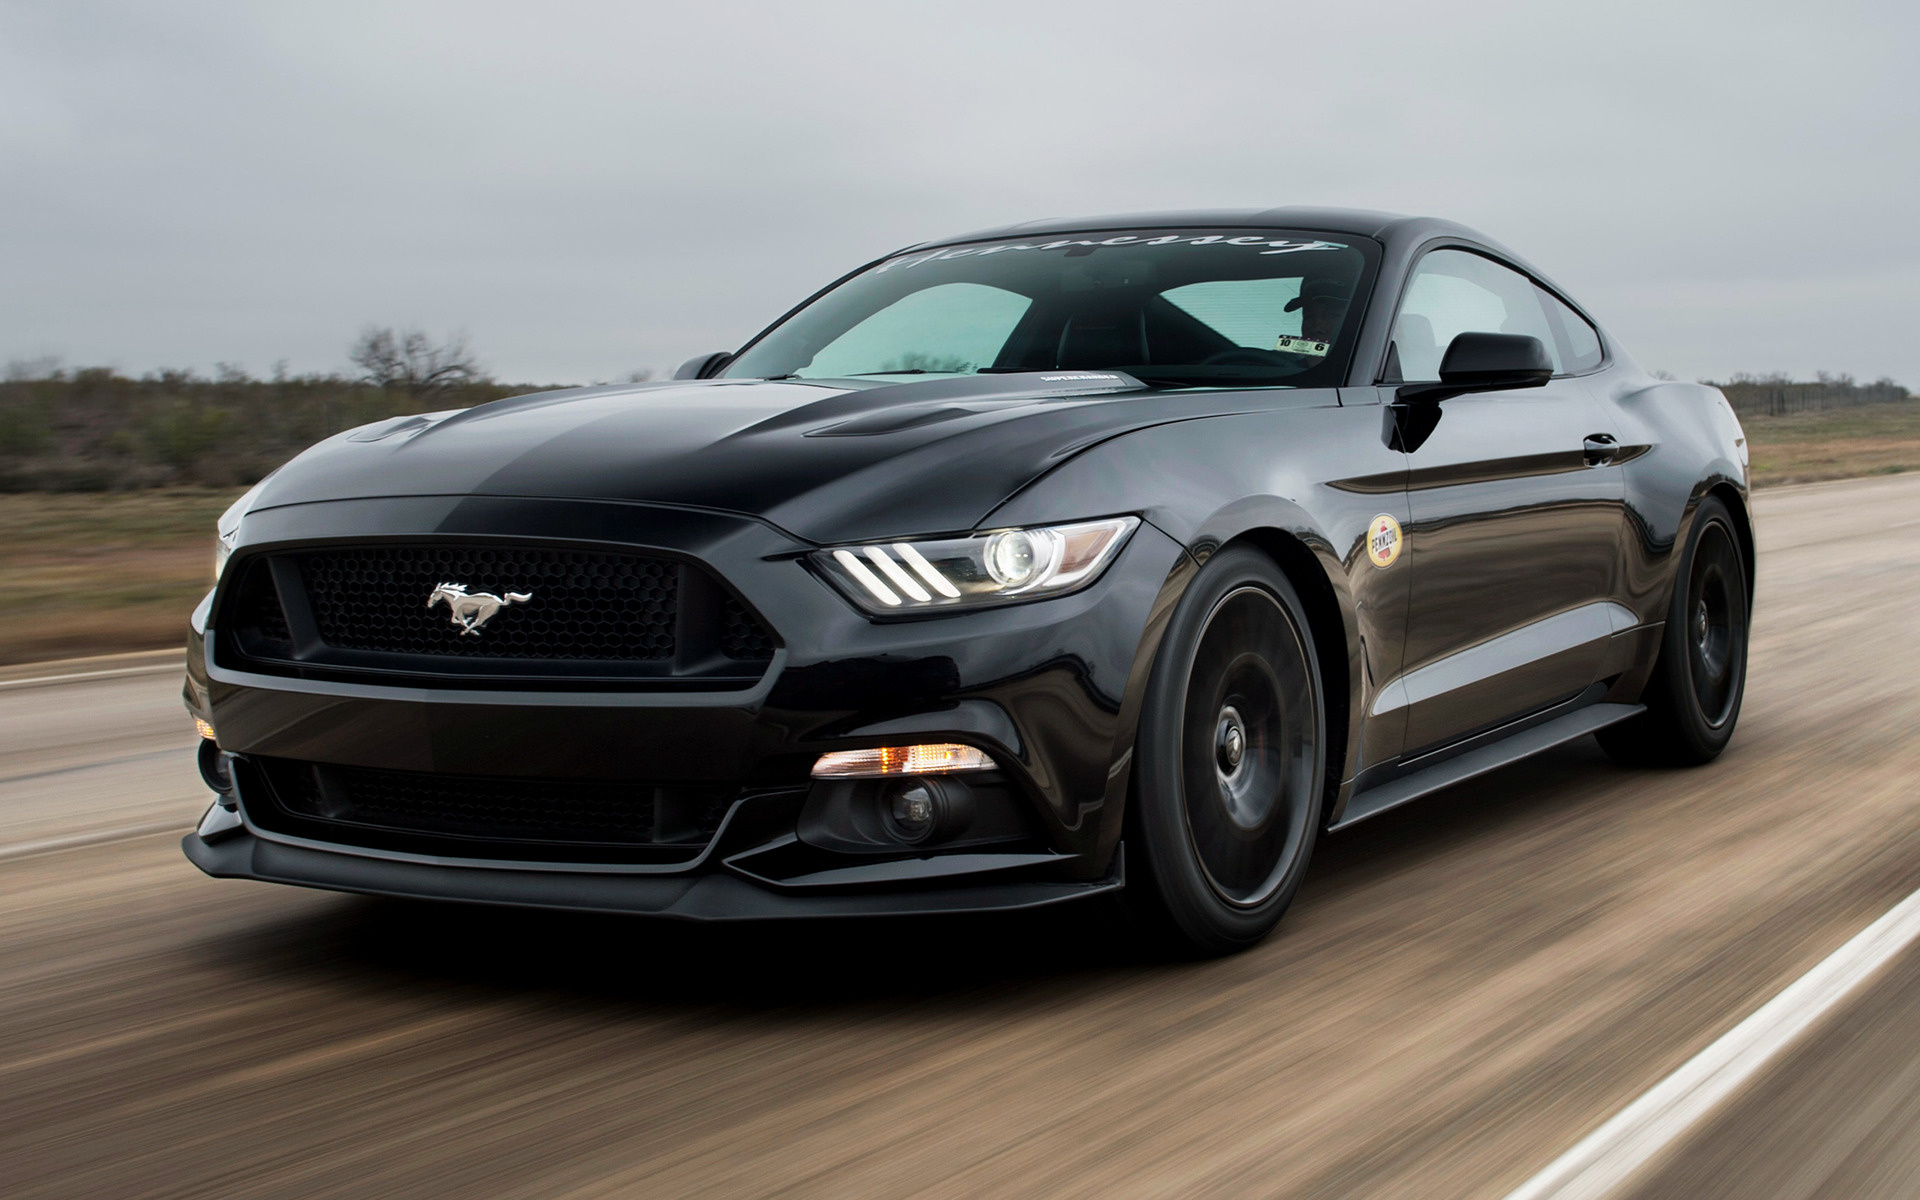 2015 Hennessey Mustang GT HPE700 Supercharged - Wallpapers ...